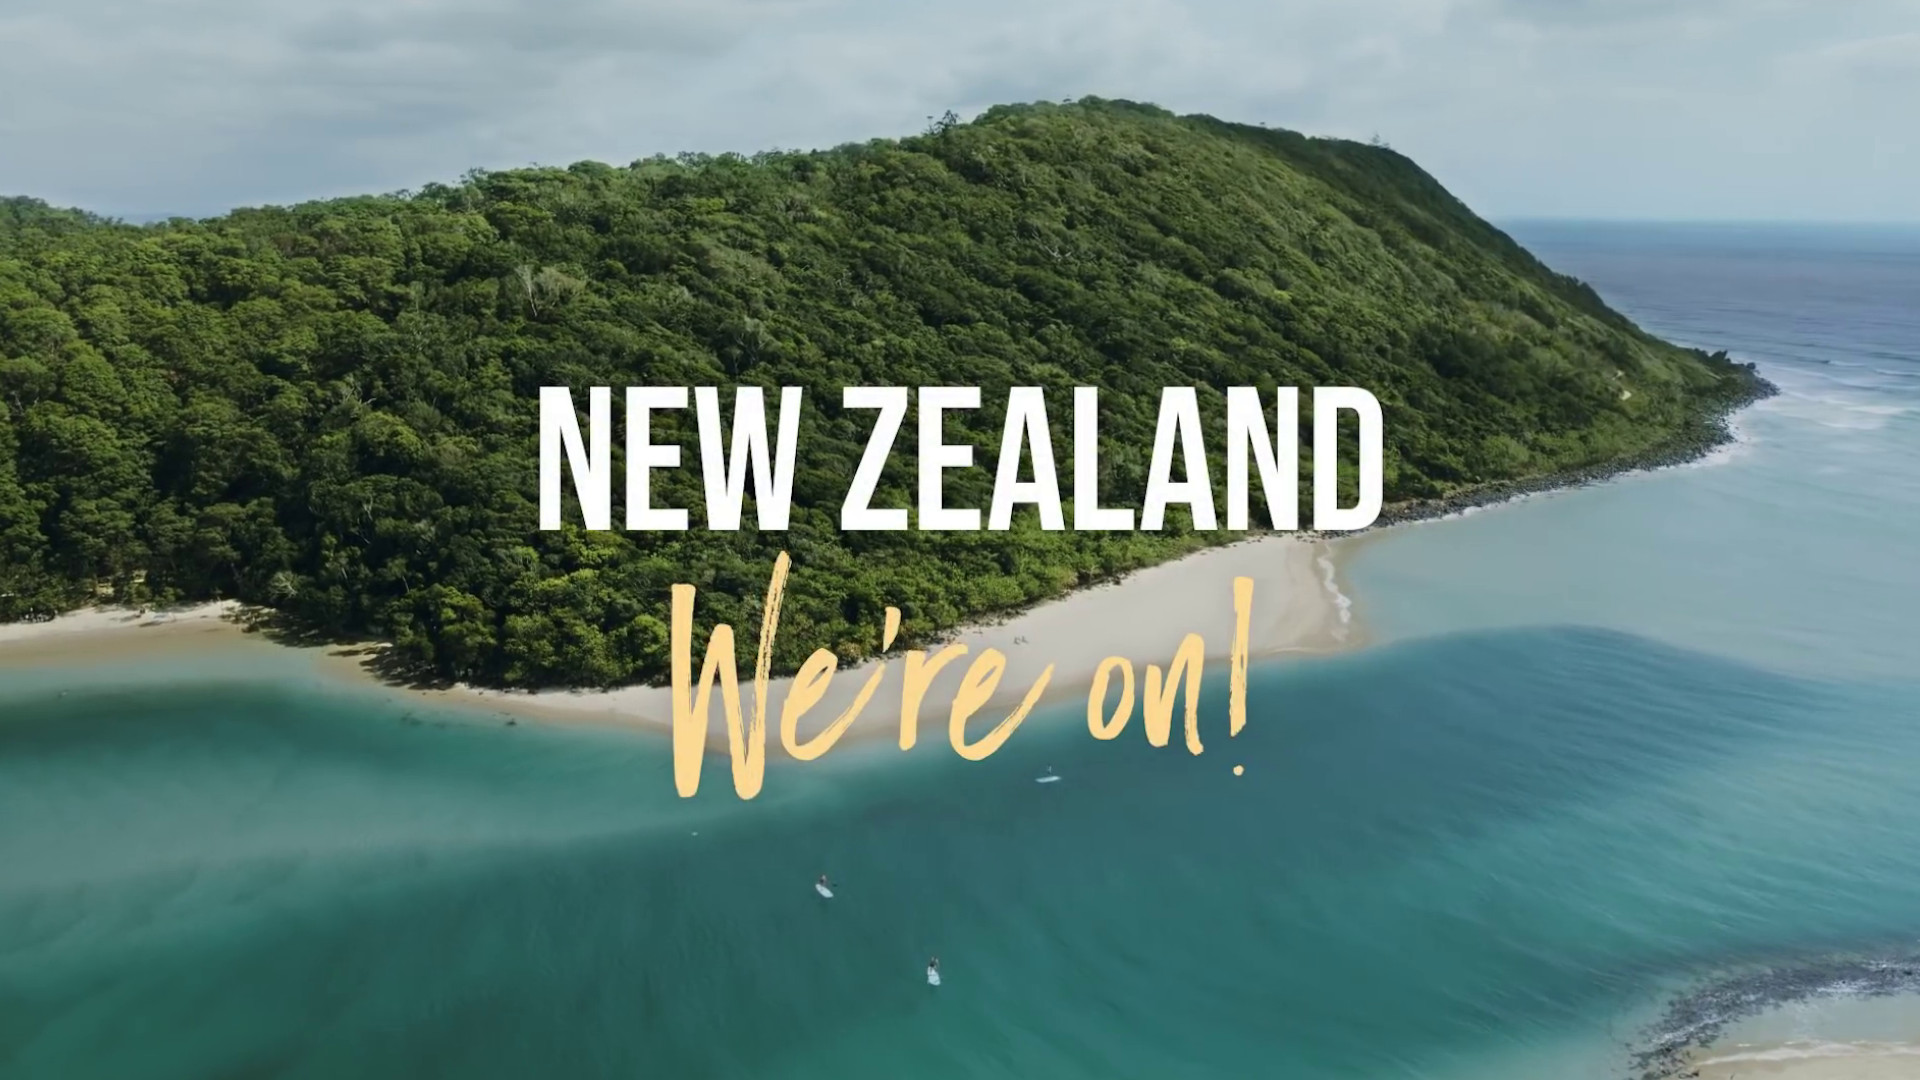 Travel Bubble Campaign of Destination Gold Coast for New Zealanders